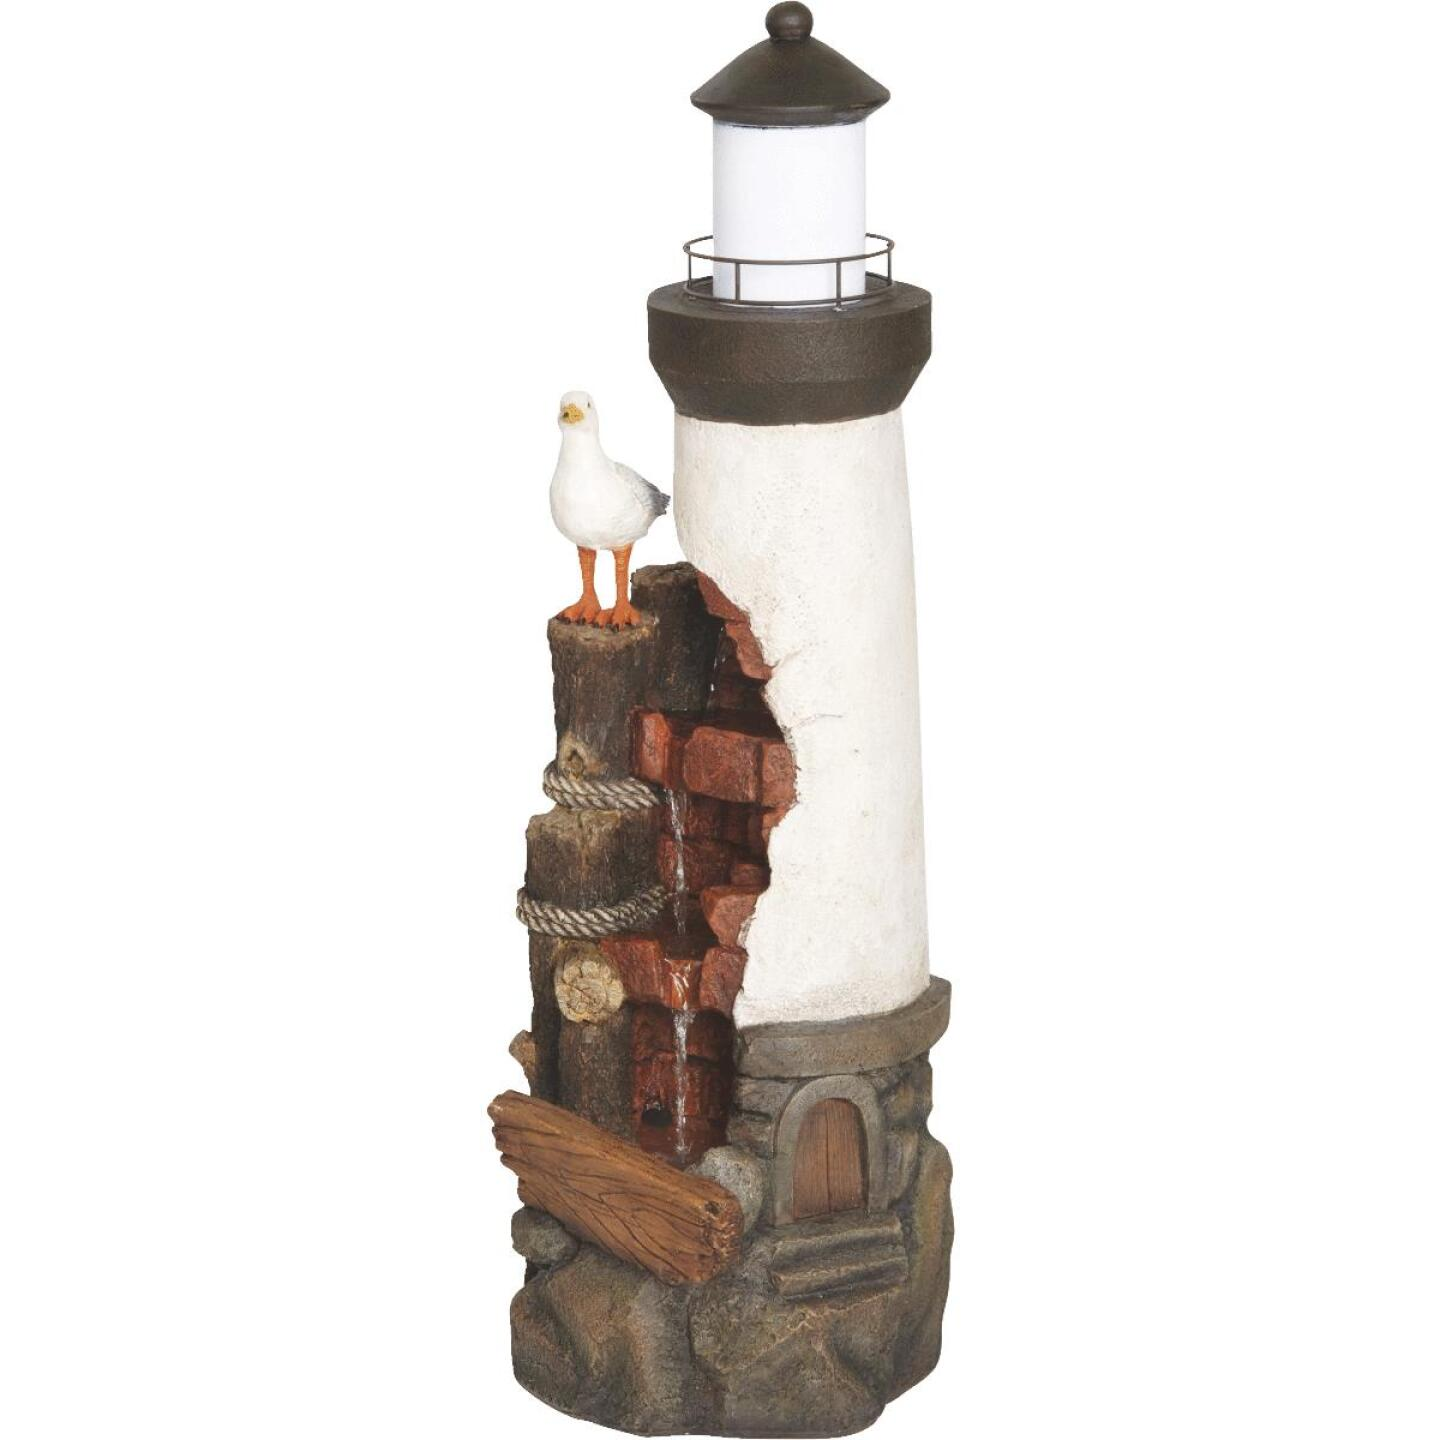 Best Garden 12 In. W. x 36 In. H. x 12 In. L. Resin Lighthouse with Seagull Fountain Image 2